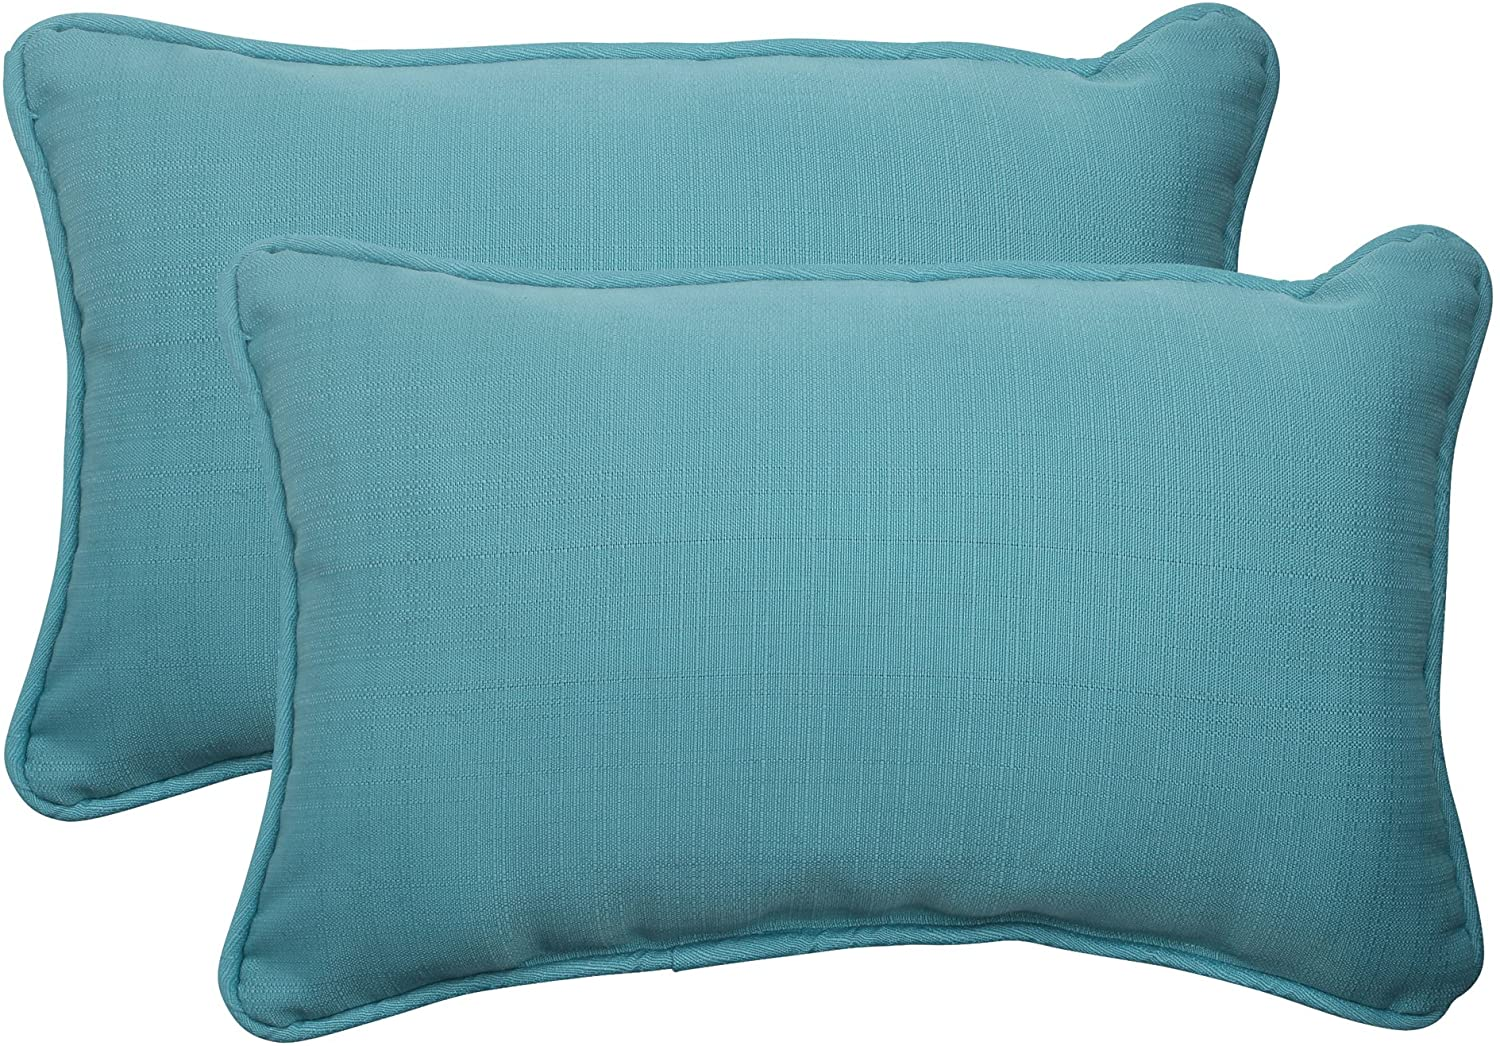 Amazon Com Pillow Perfect Outdoor Indoor Forsyth Pool Floor Pillow 25 X 25 Turquoise Home Kitchen